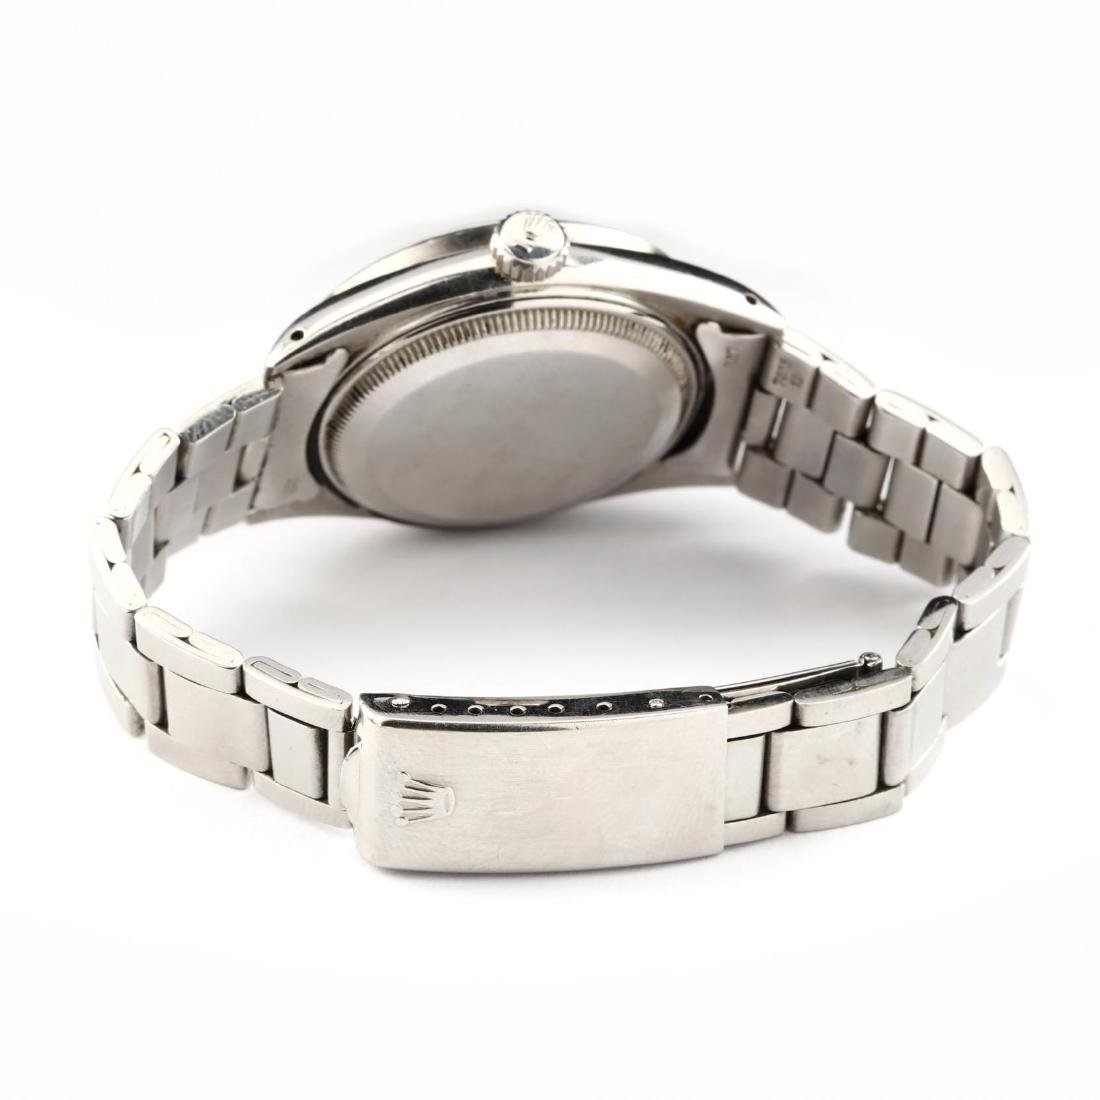 """Vintage Stainless Steel """"Oyster Perpetual Date"""" Watch, - 2"""